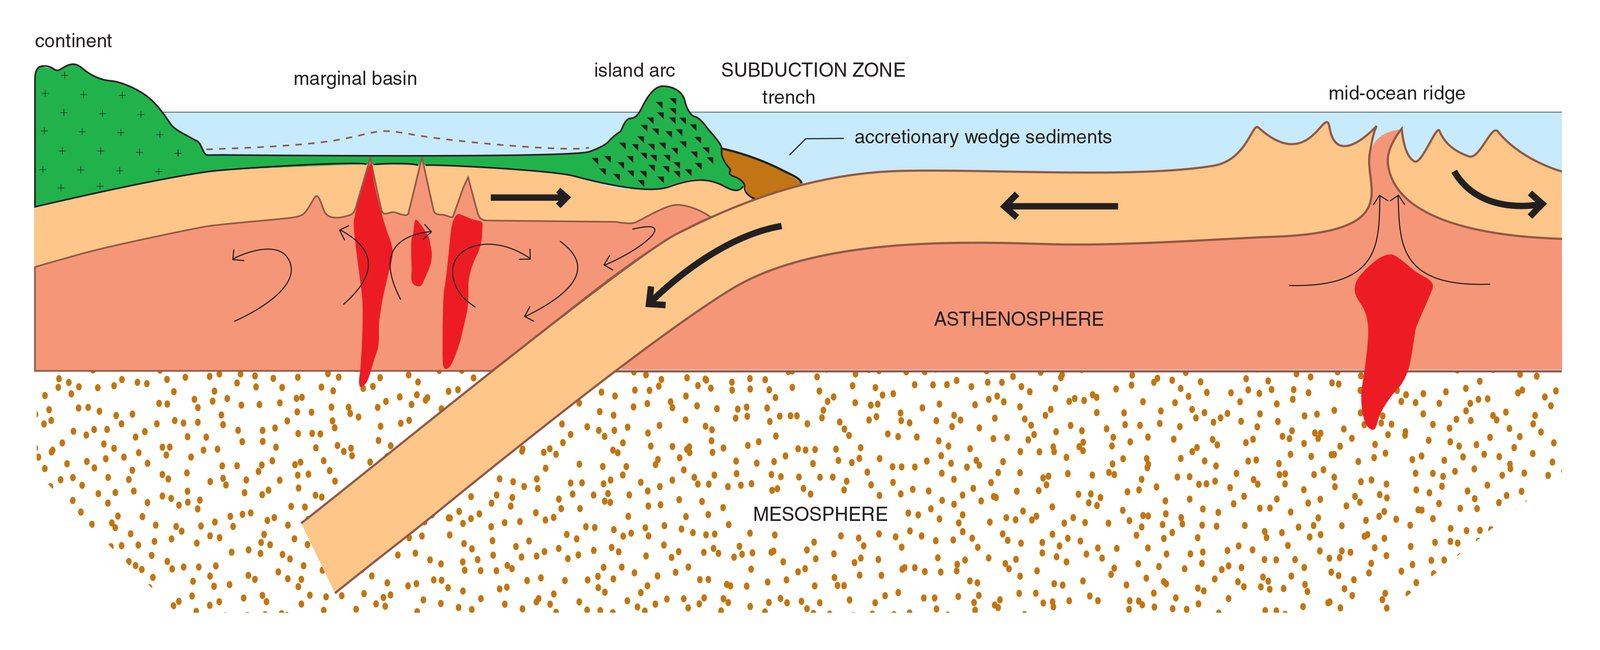 Cross-section through tectonic plates